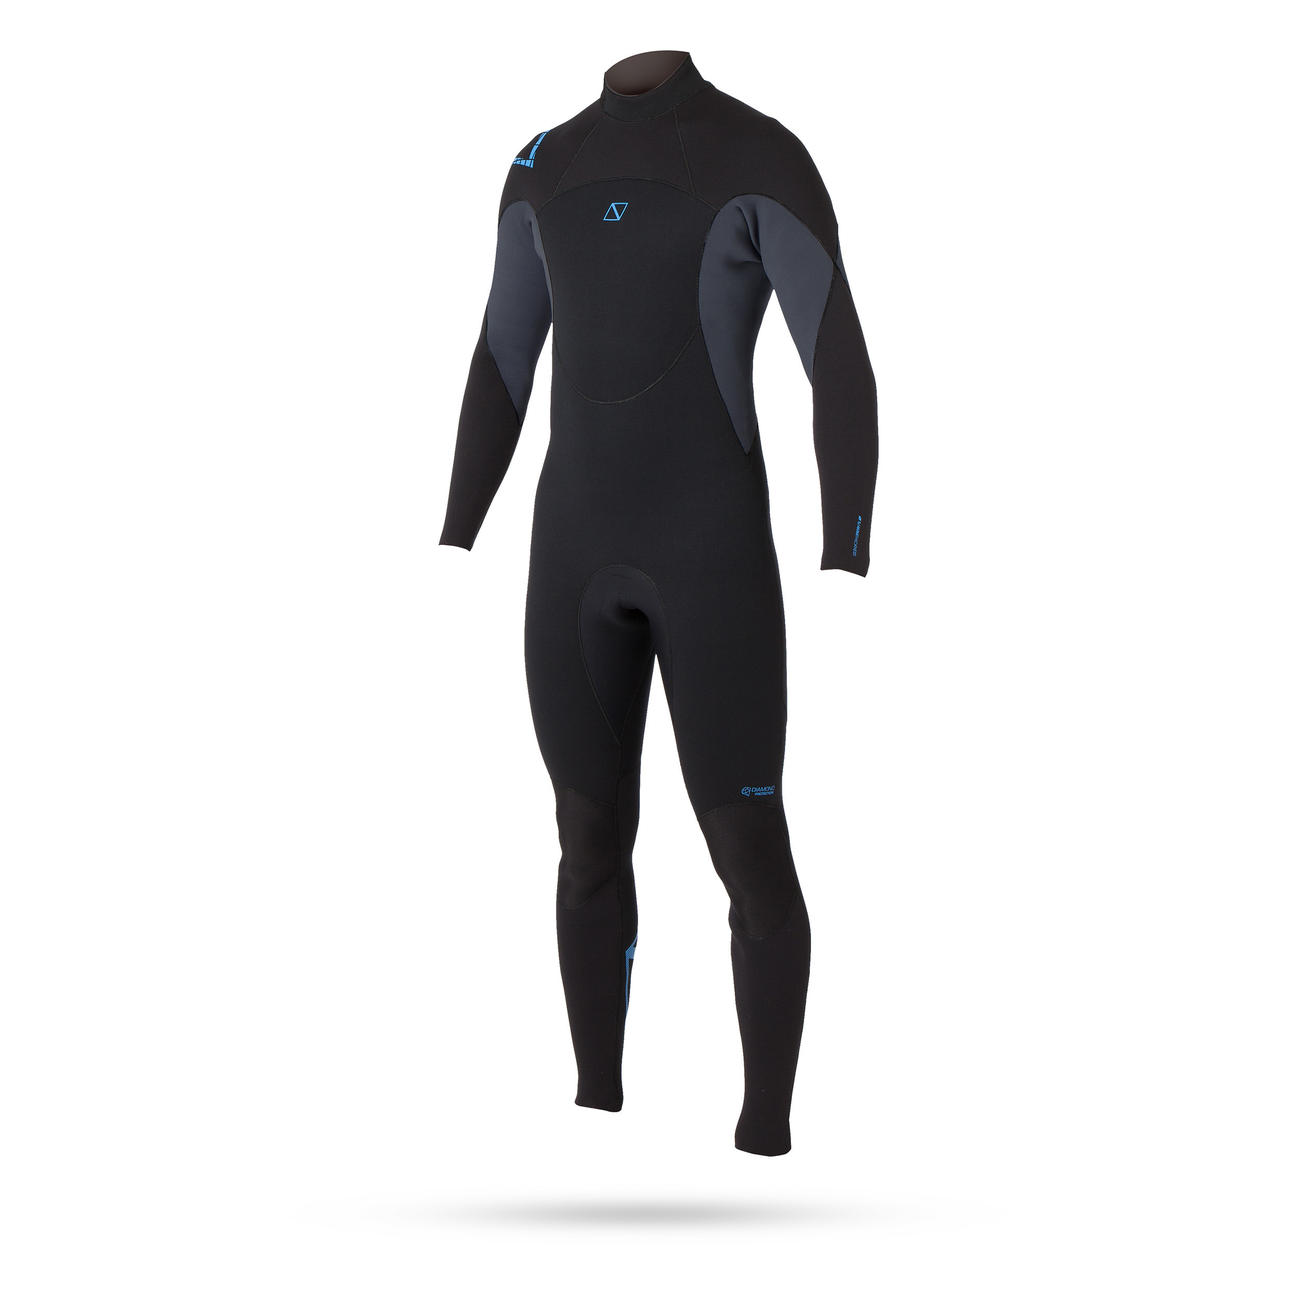 BRAND FULLSUIT 5/4 back-zip Junior